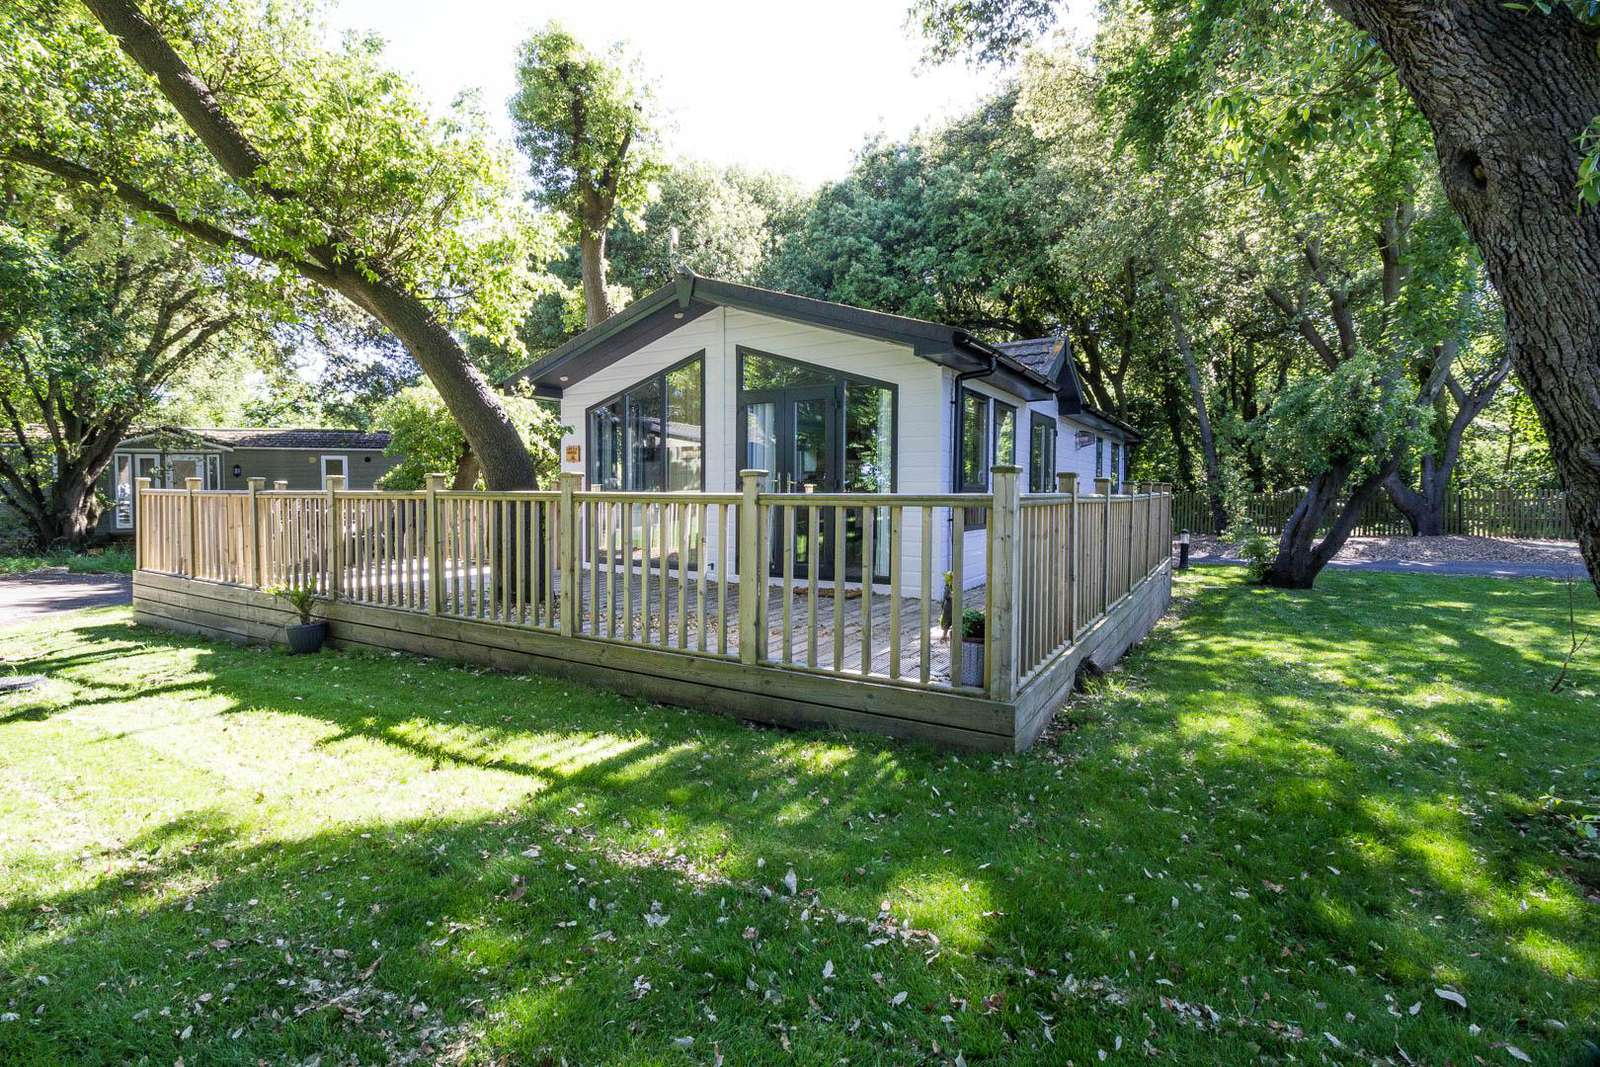 32002AS – Ocean Glade area, 2 bed, 4 berth lodge with decking. Platinum Deluxe rated. - property